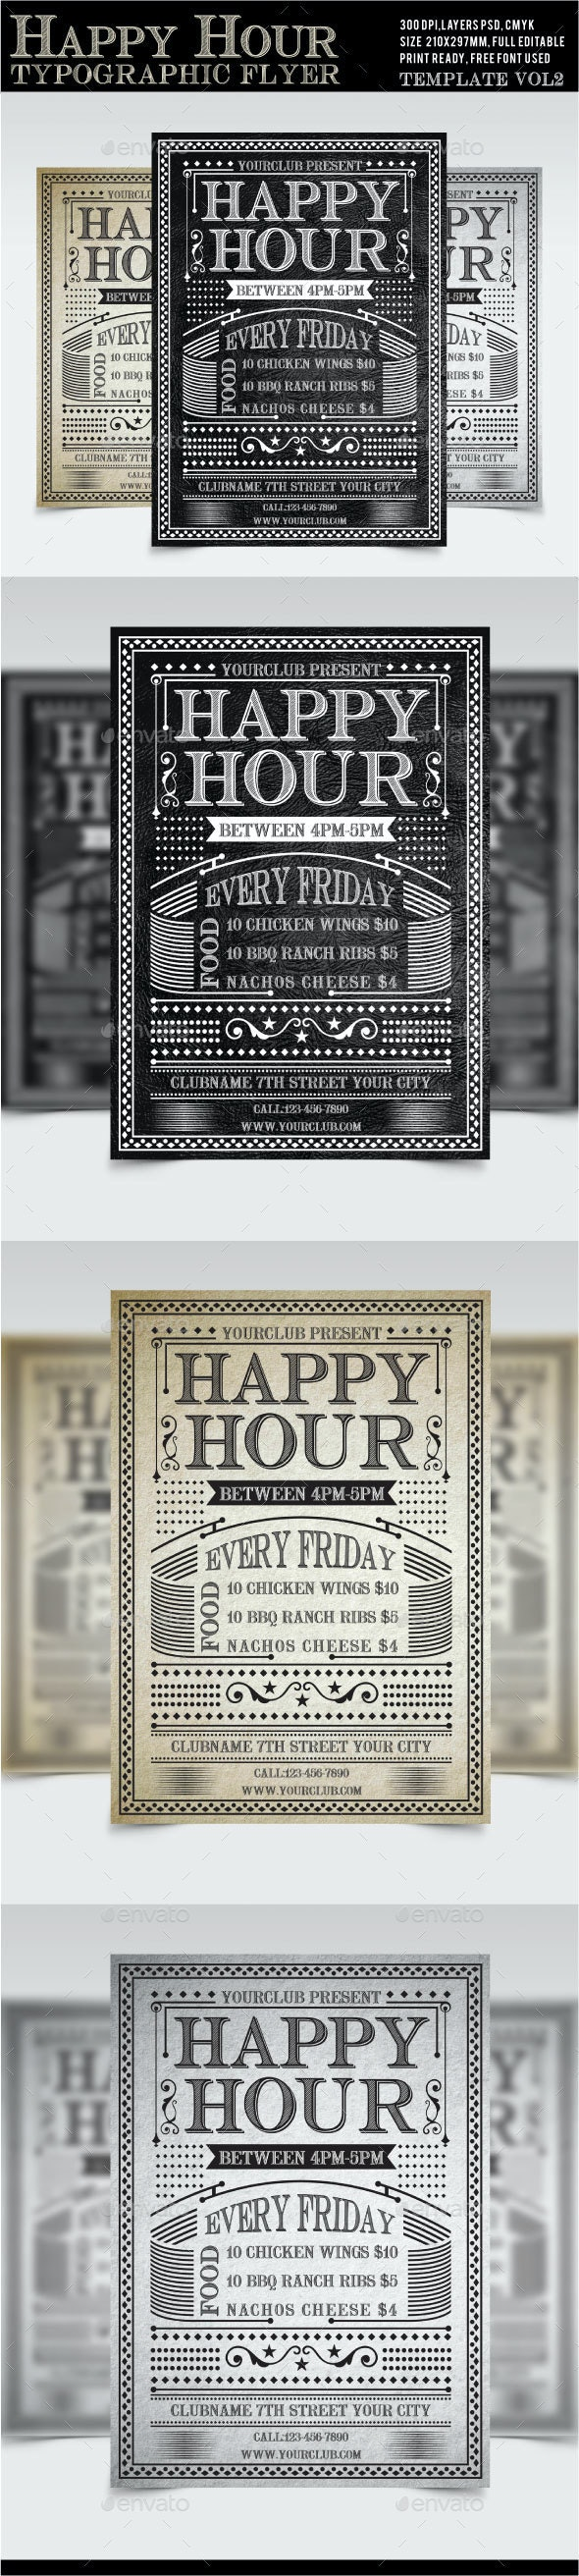 Happy Hour Flyer Vol2 - Restaurant Flyers